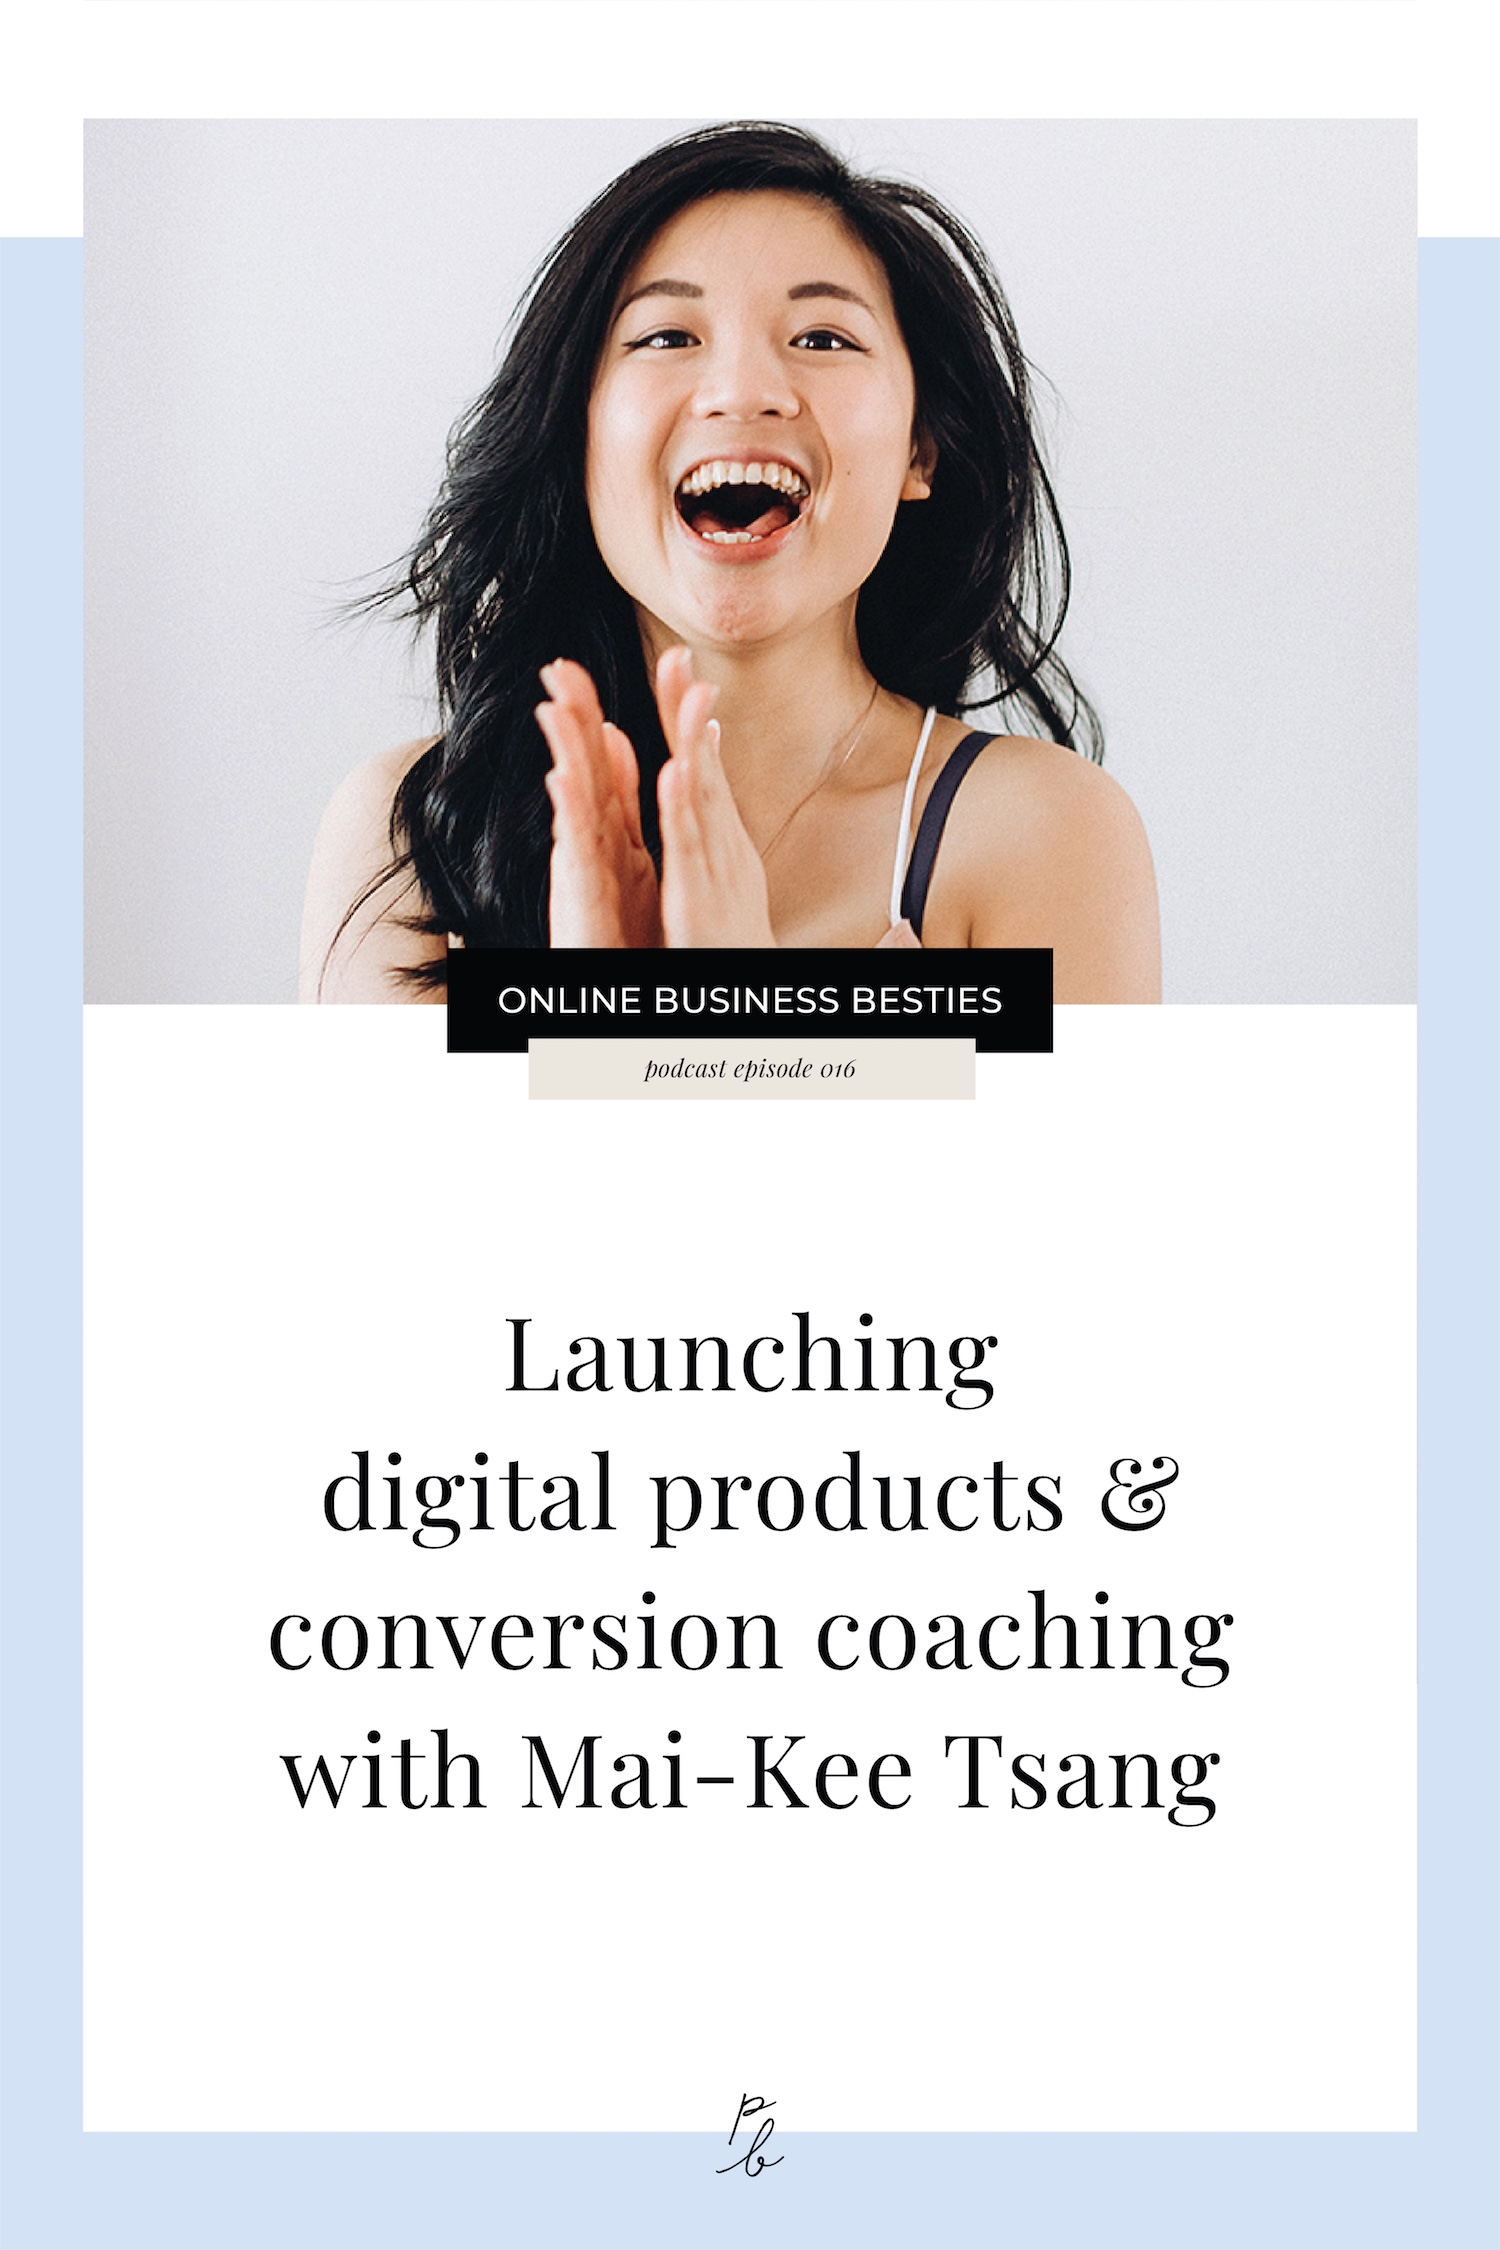 016 Launching digital products & conversion coaching with Mai-Kee Tsang-89.jpg